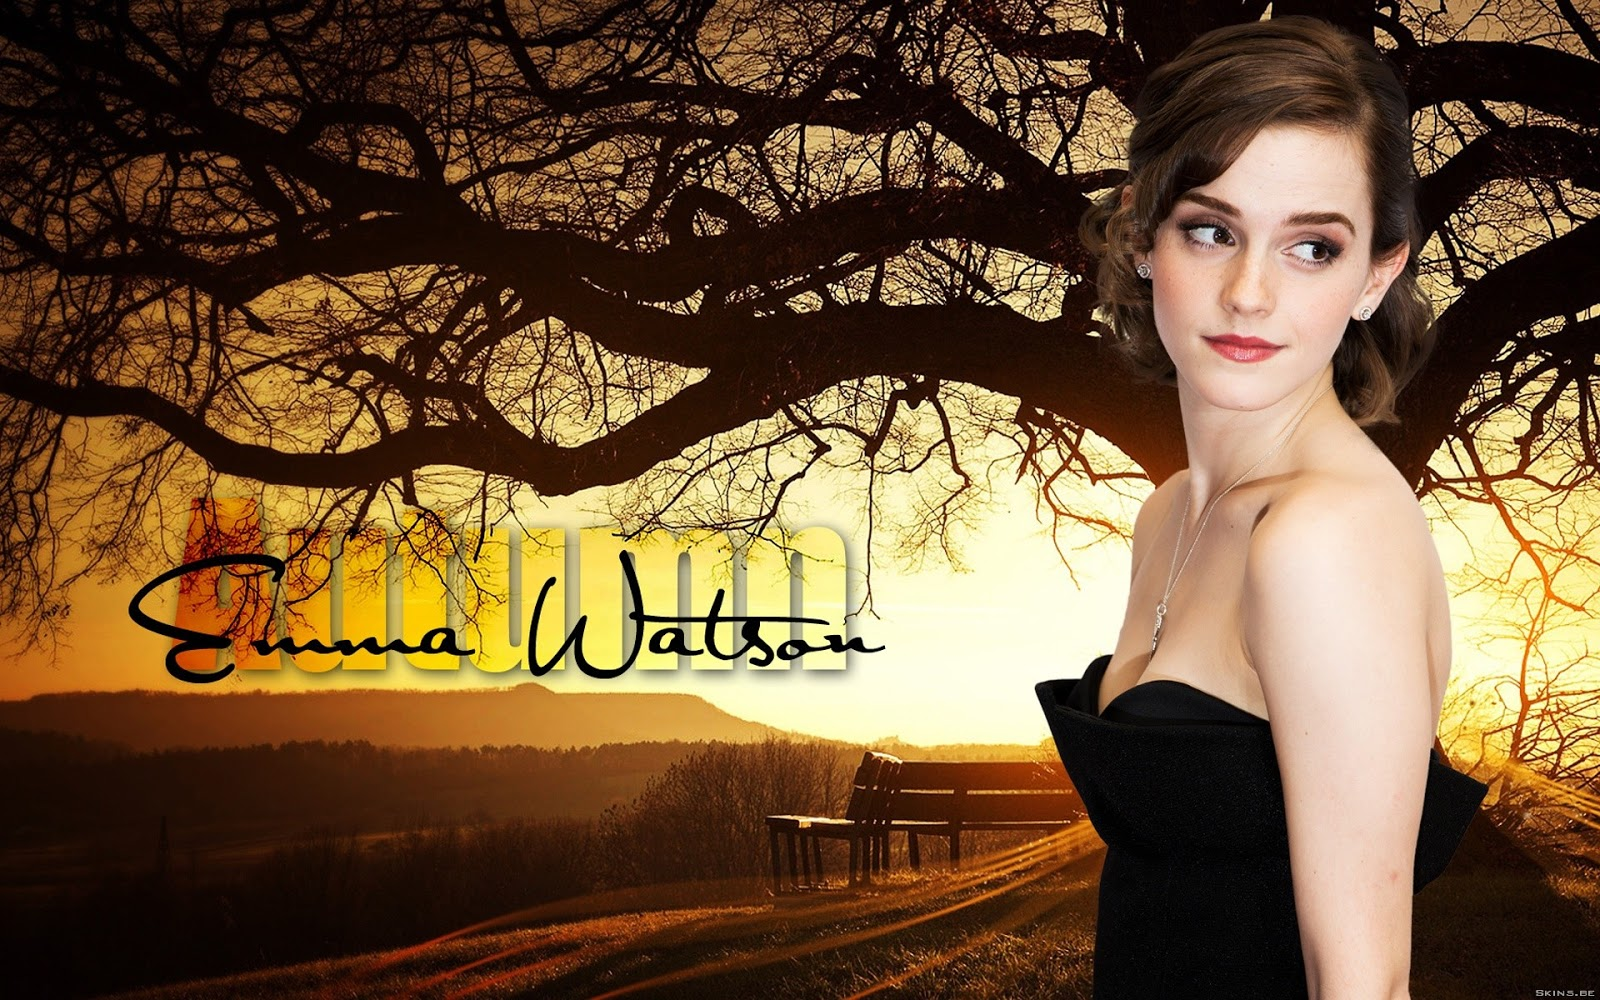 Emma watson hd wallpapers - Emma watson wallpaper free download ...